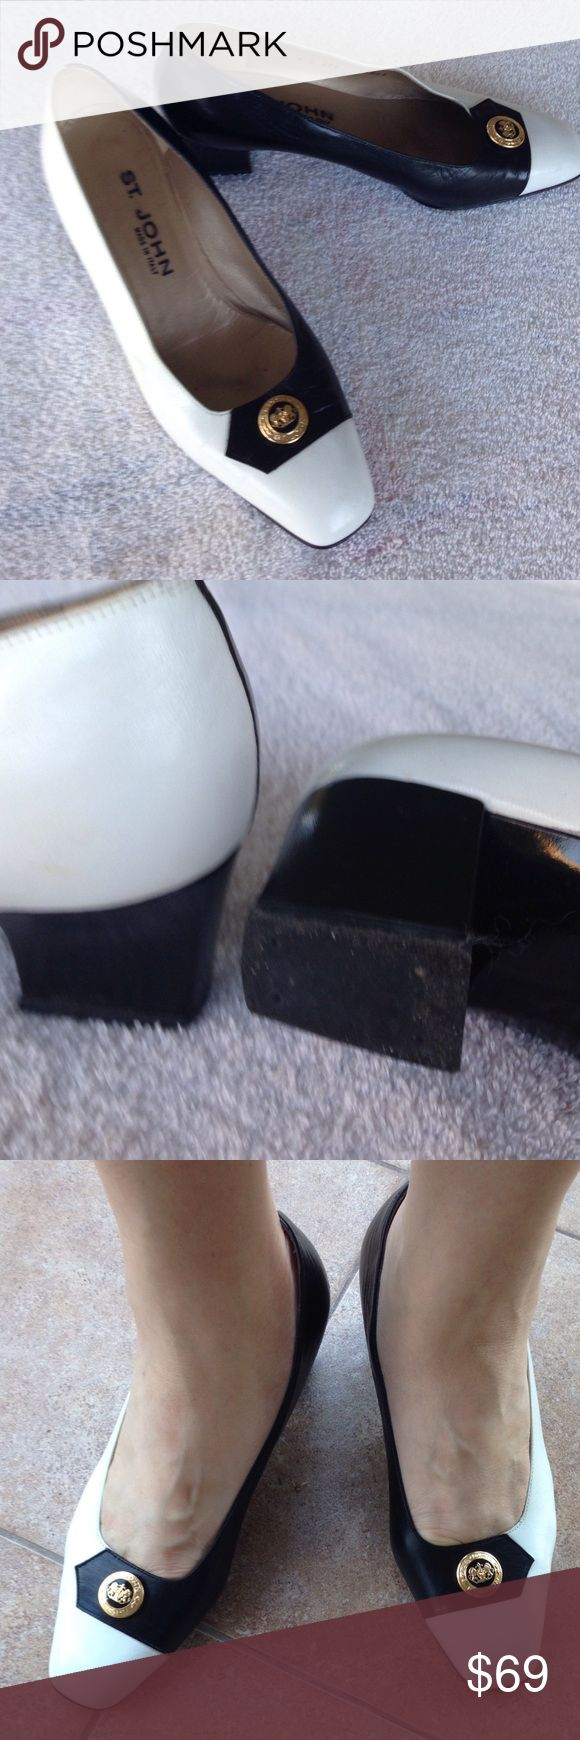 """ST JOHN Shoes 9B Mint Condition ST JOHN Shoes B 9, black and white pump with 2"""" heel. Wore few times.  OBO St. John Shoes Heels"""